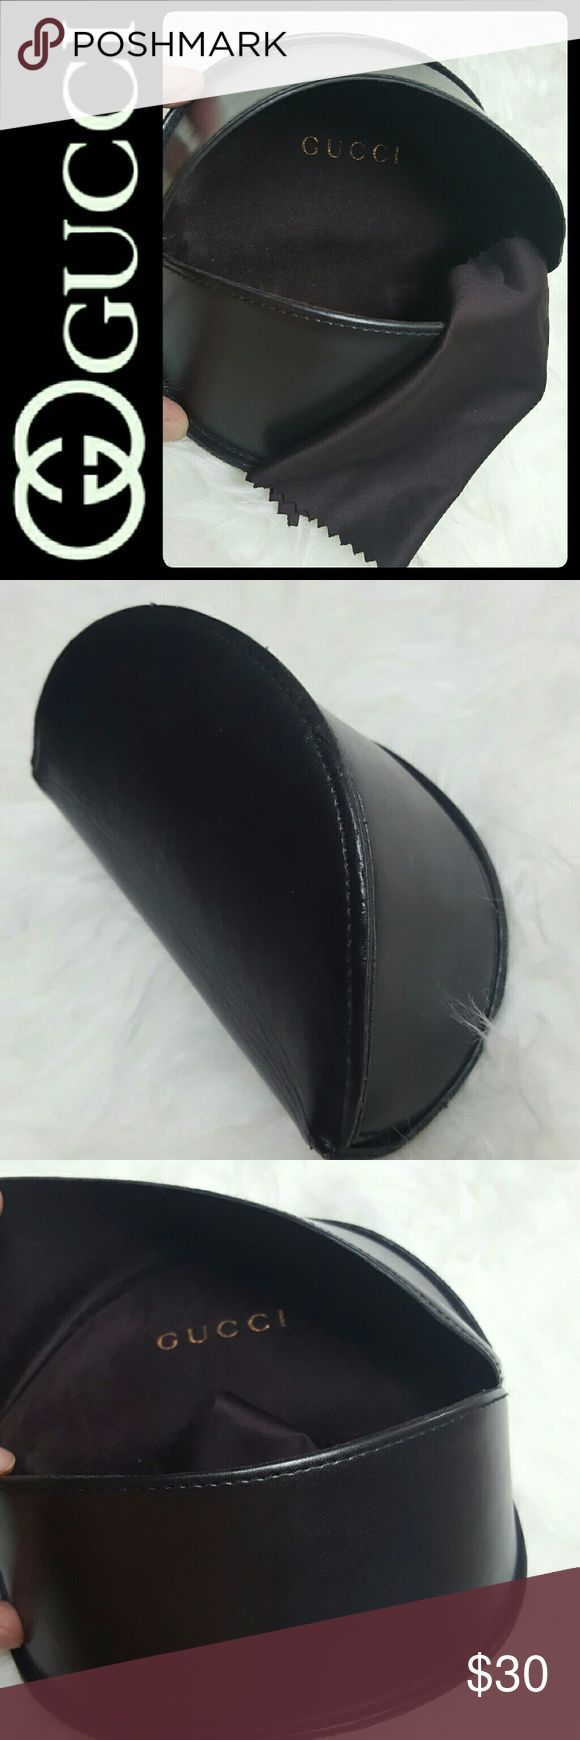 Gucci Designer Sunglasses Case Gucci Designer Brand Sunglasses Case, Soft Leathery Style in Dark Brown to Almost Black Shade! Comes with Original Cleaning Cloth with Gucci Print on It,  Used in Mint Condition Gucci Accessories Sunglasses